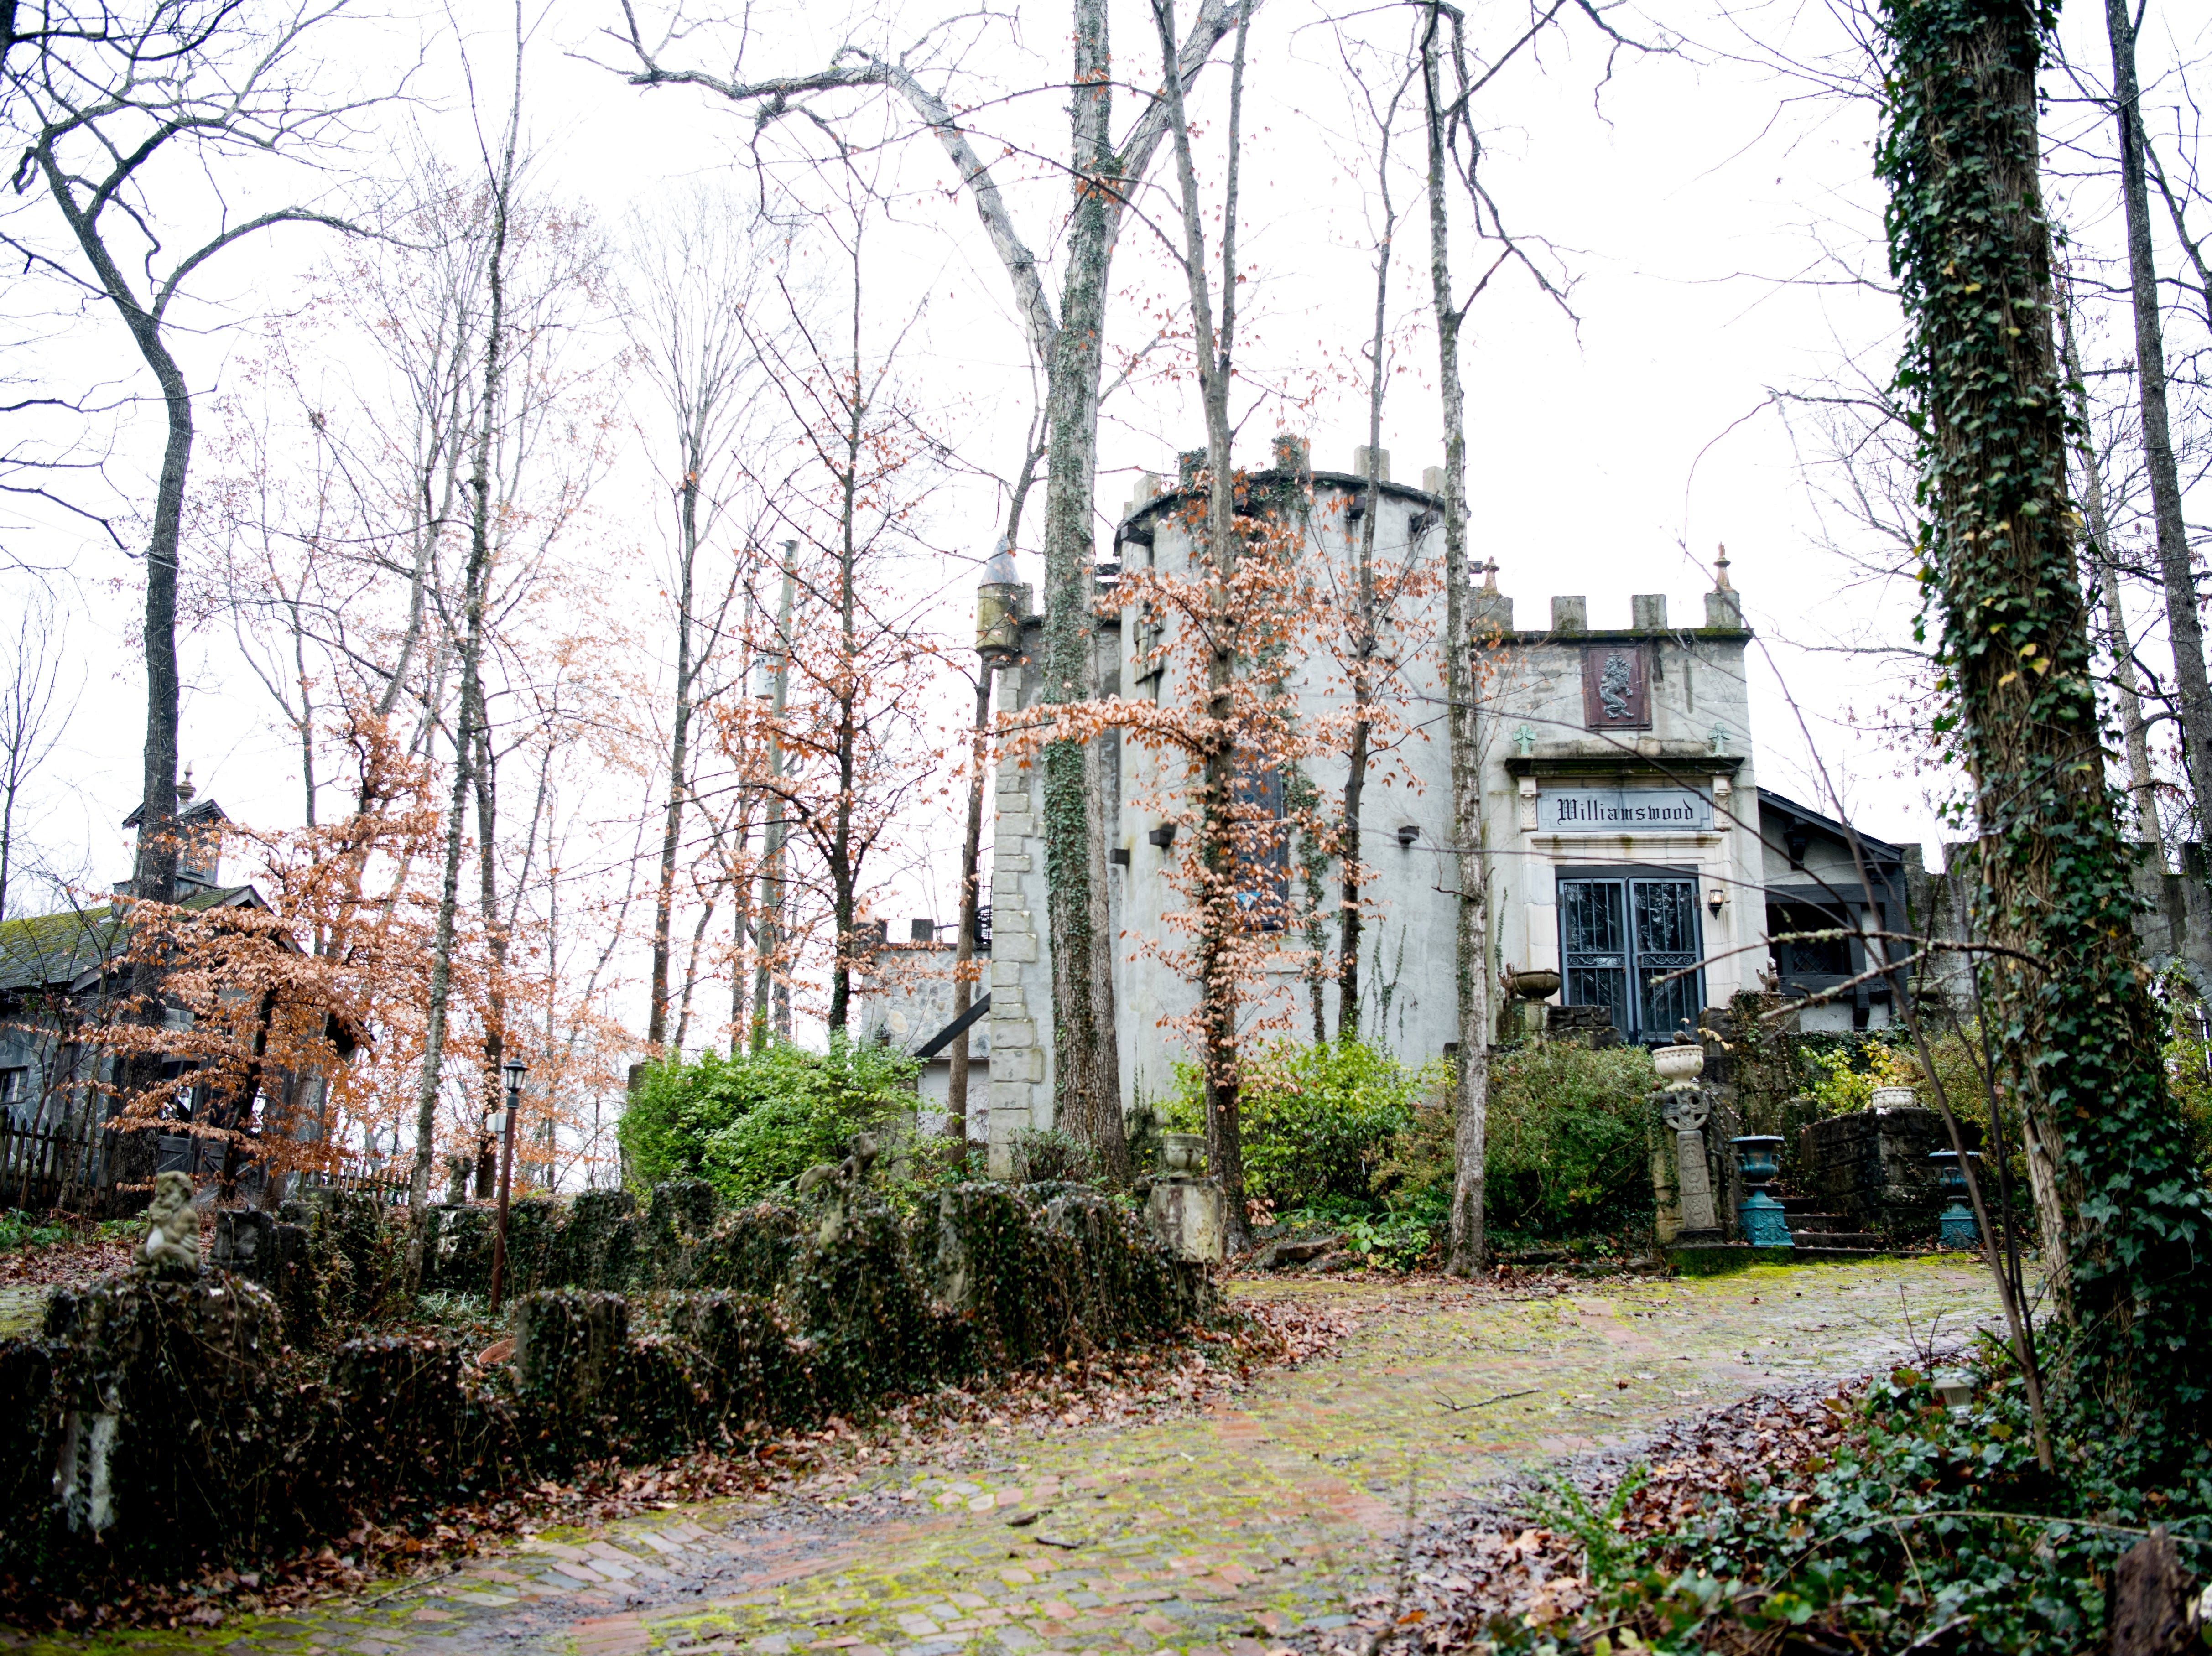 Williamswood Castle in South Knoxville, Tennessee on Thursday, January 17, 2019. The home, modeled after a medieval castle, was built by Julia Tucker in 1991 and took 6 years to complete. Many of the items in the home were sourced from around the Knoxville area.